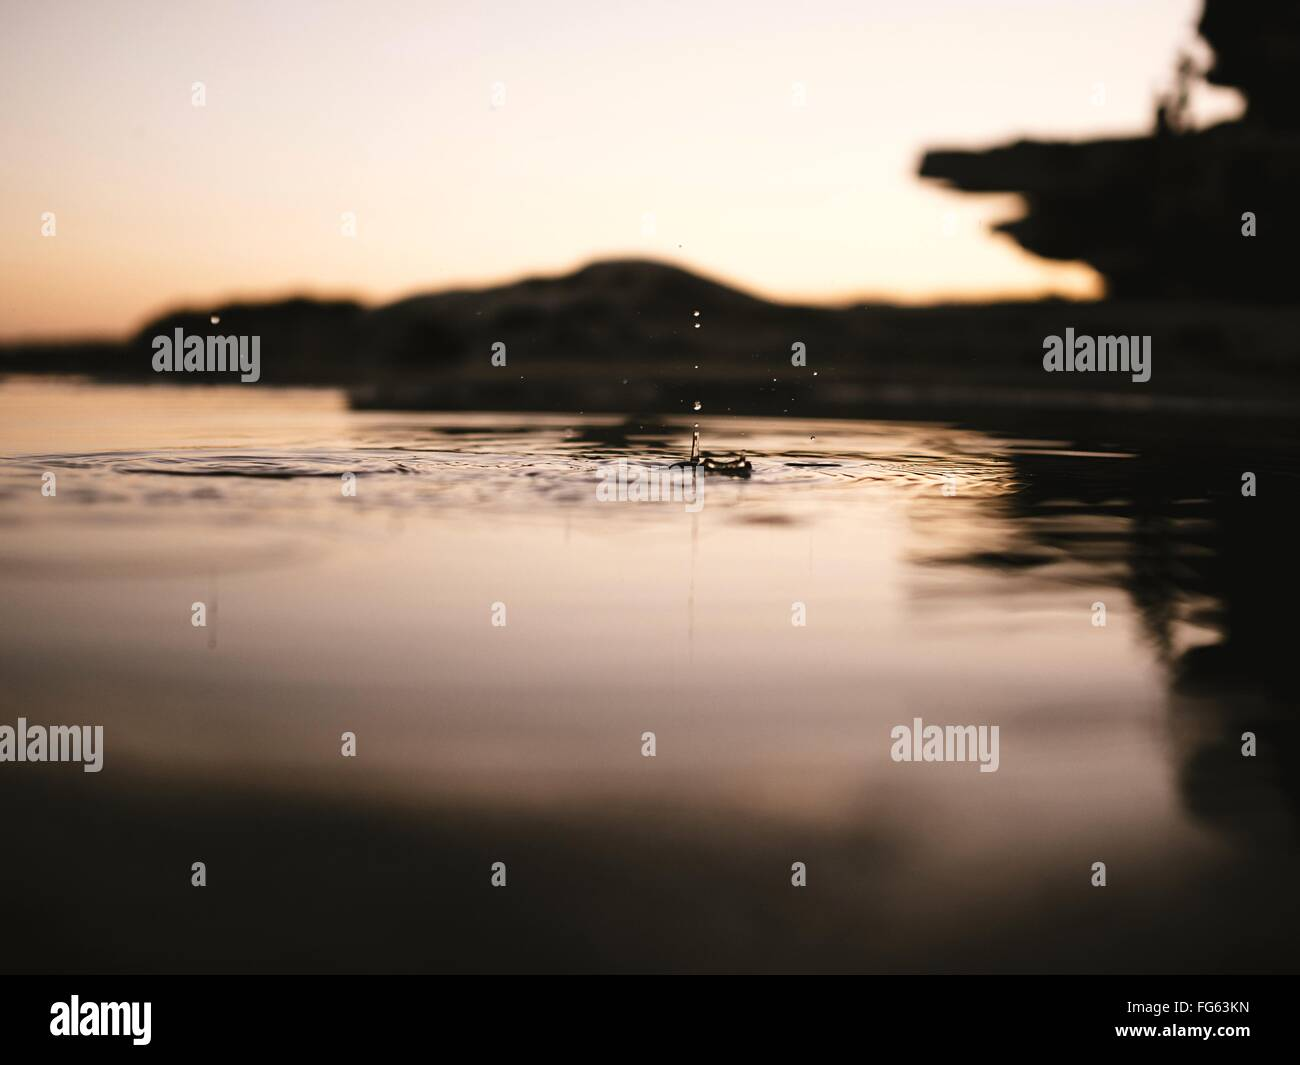 Close-Up Of Drop Falling On Water At Lake Against Sky During Sunset - Stock Image